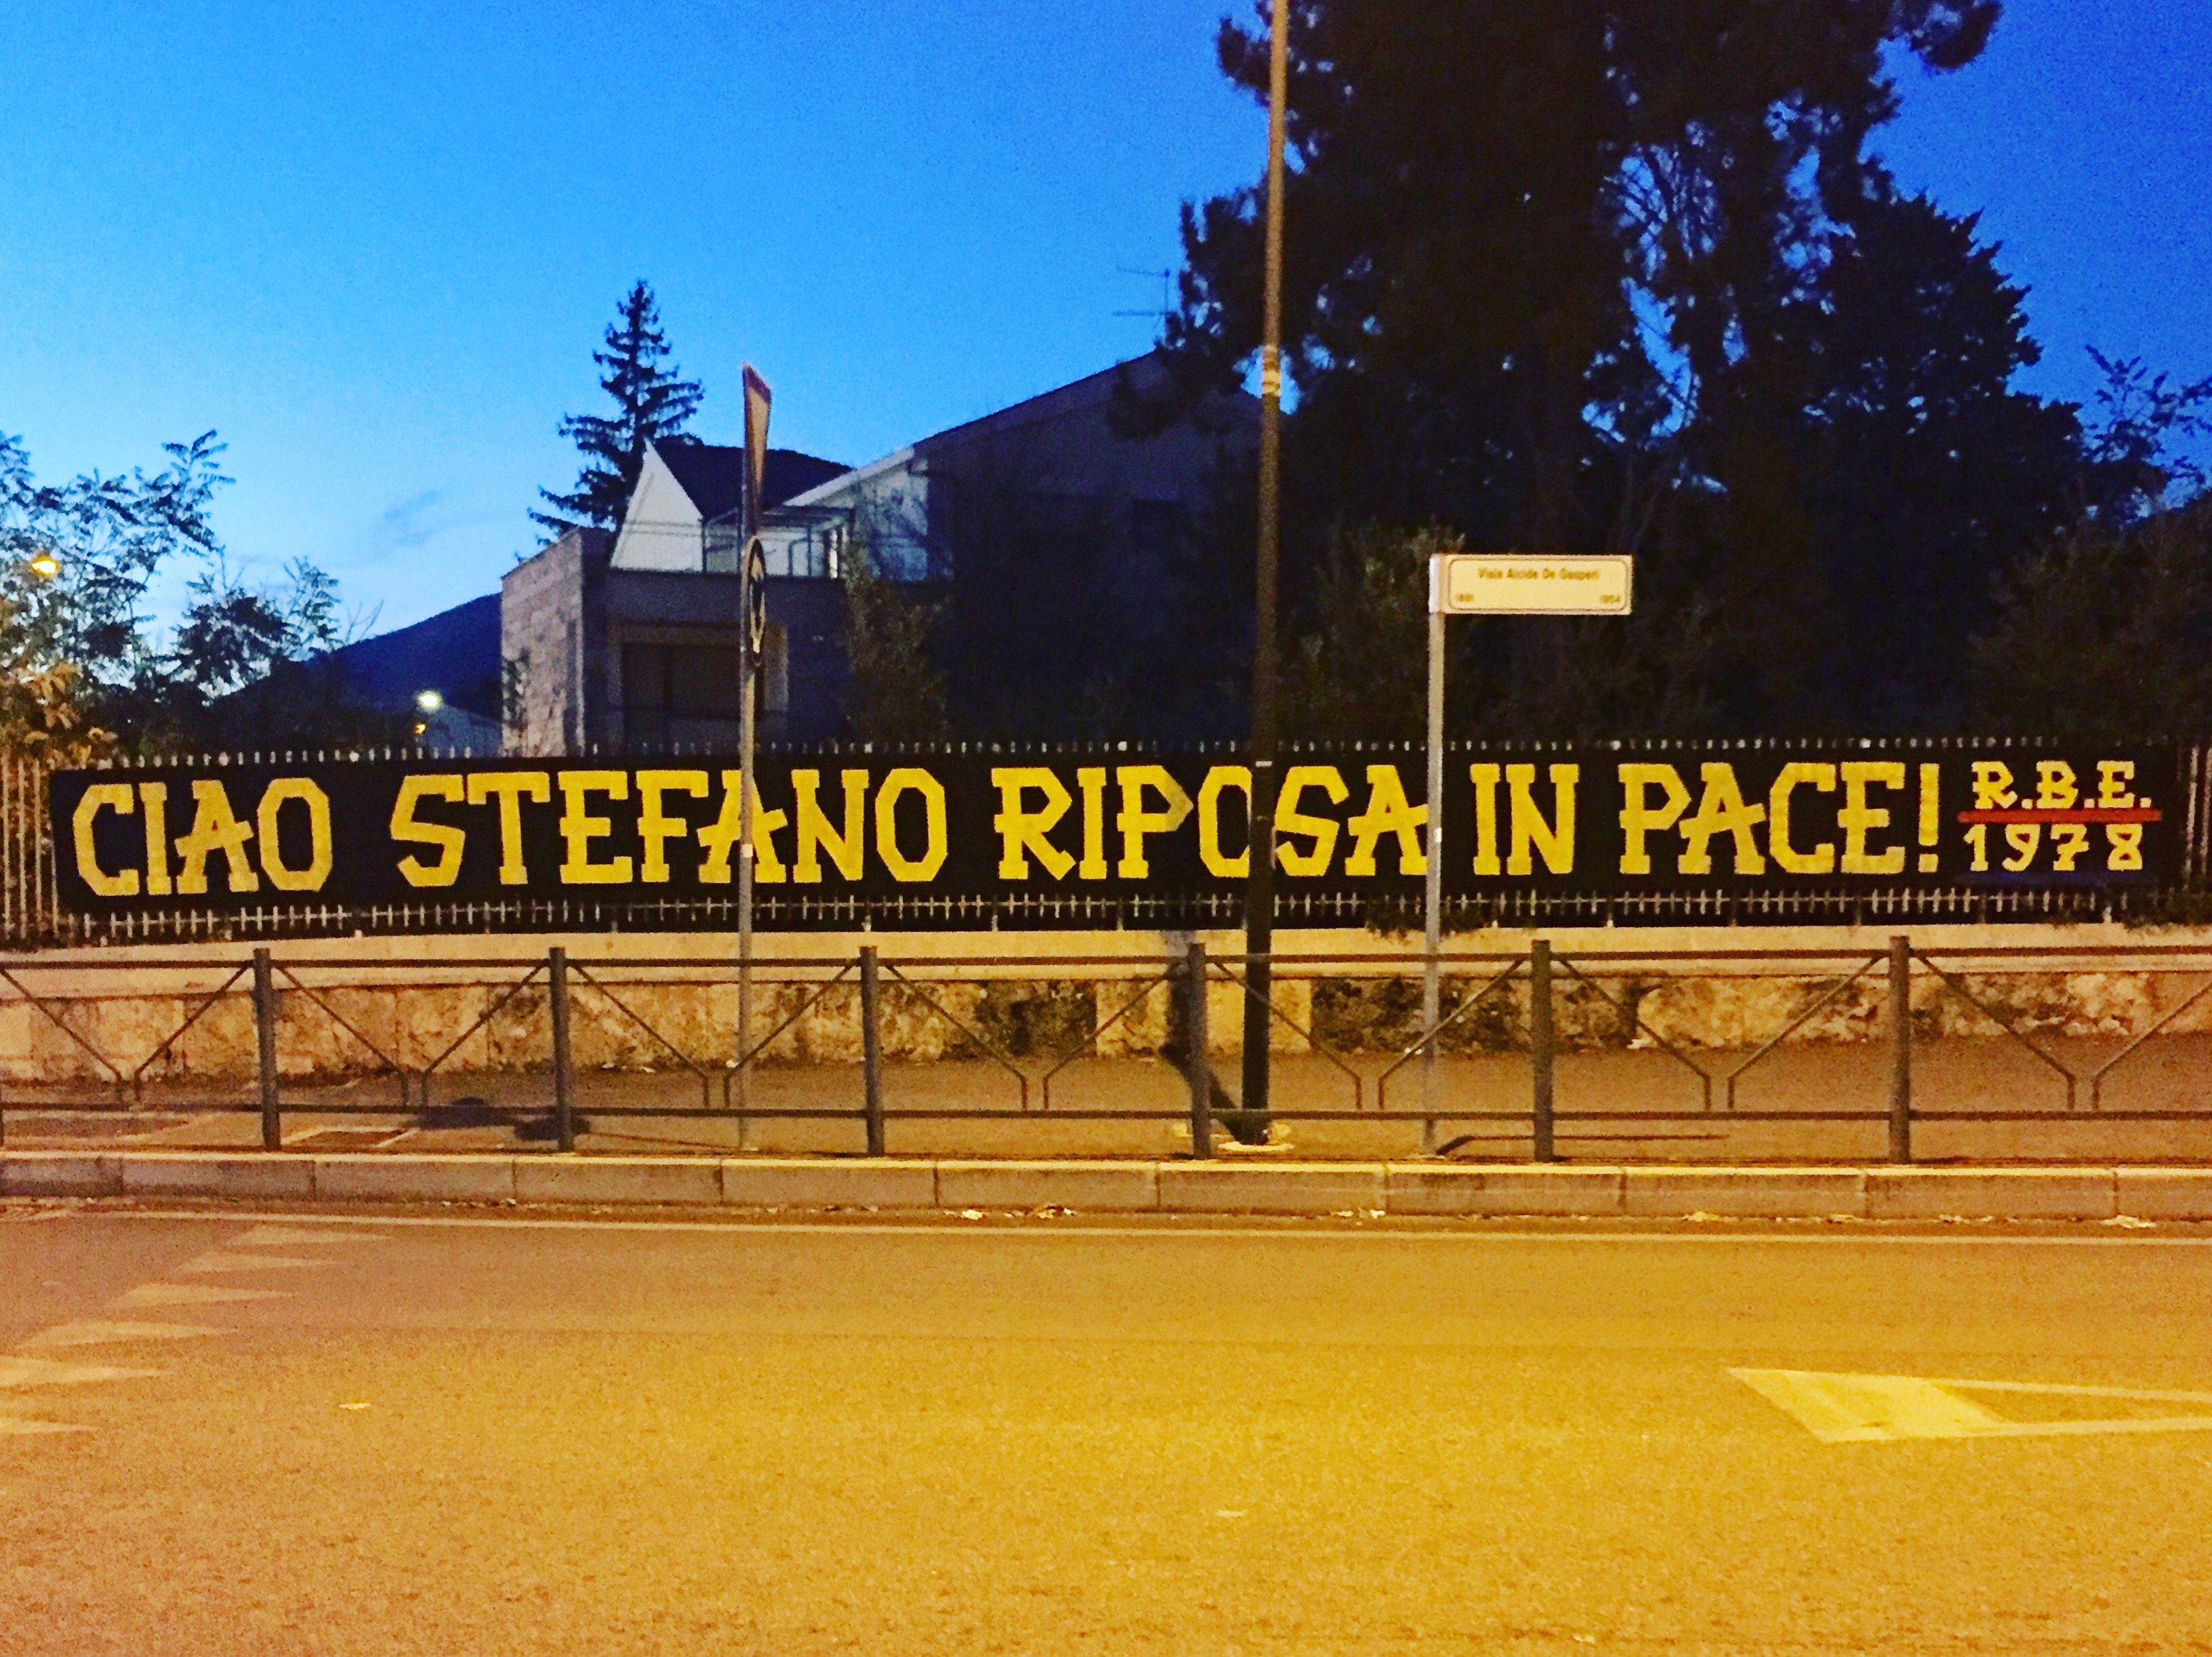 Ciao Stefano riposa in pace! 21-10-2019